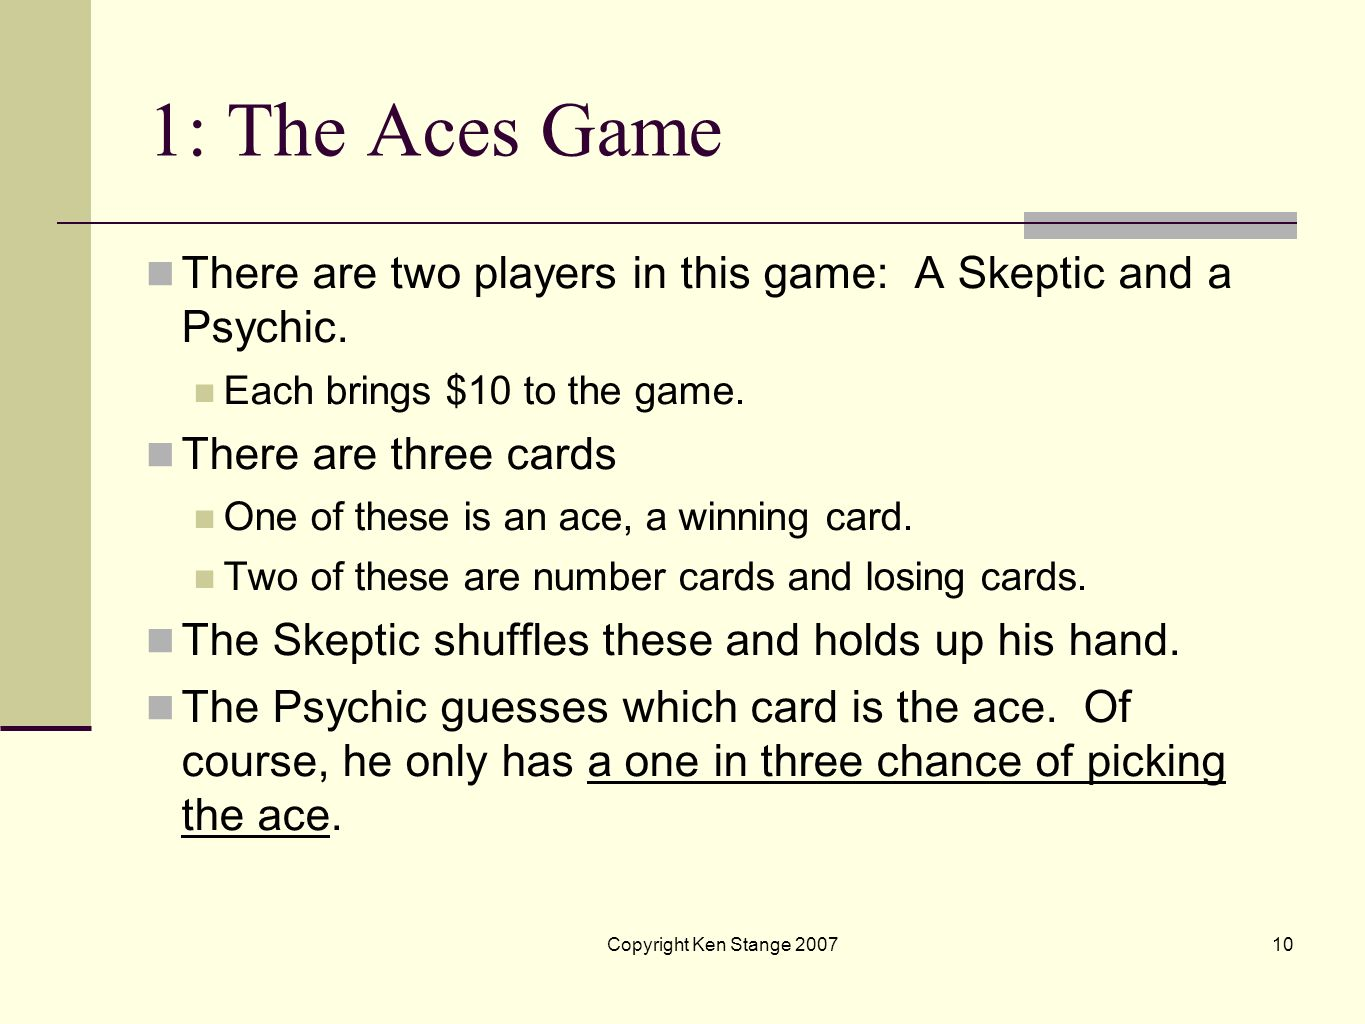 1: The Aces GameThere are two players in this game: A Skeptic and a Psychic. Each brings $10 to the game.